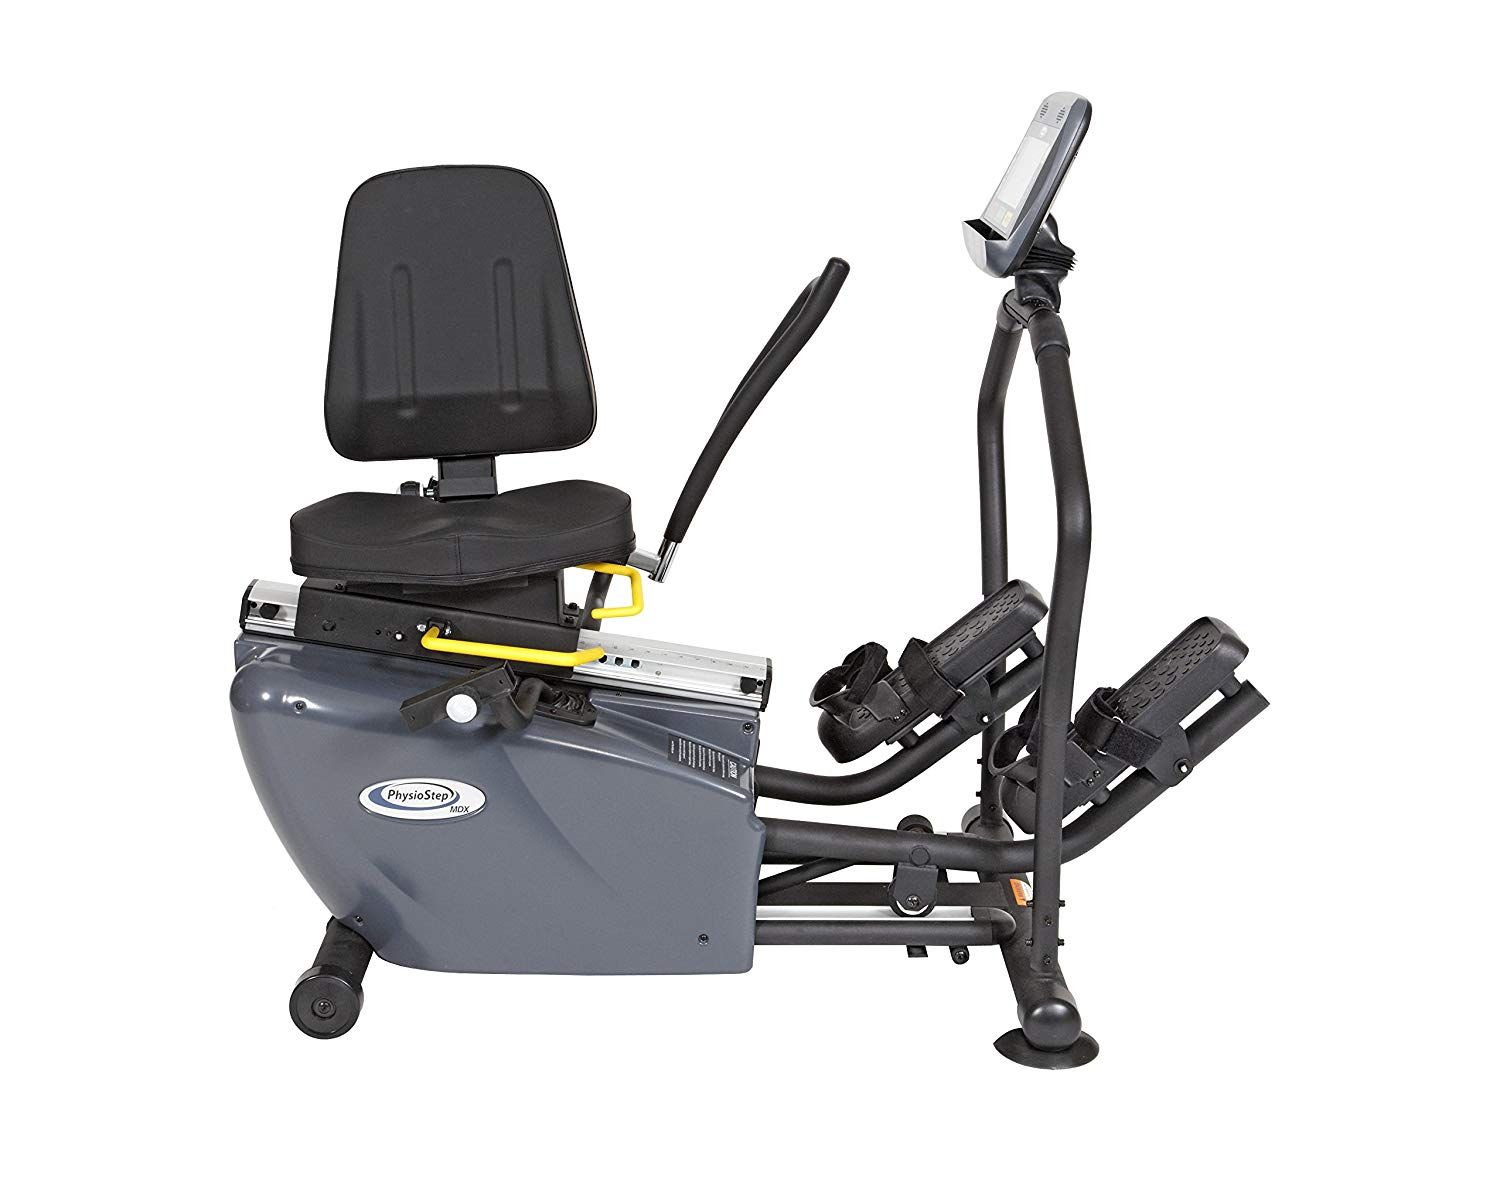 Recumbent Bikes For Overweight People For Big And Heavy People Swivel Seating Recumbent Bike Workout Swivel